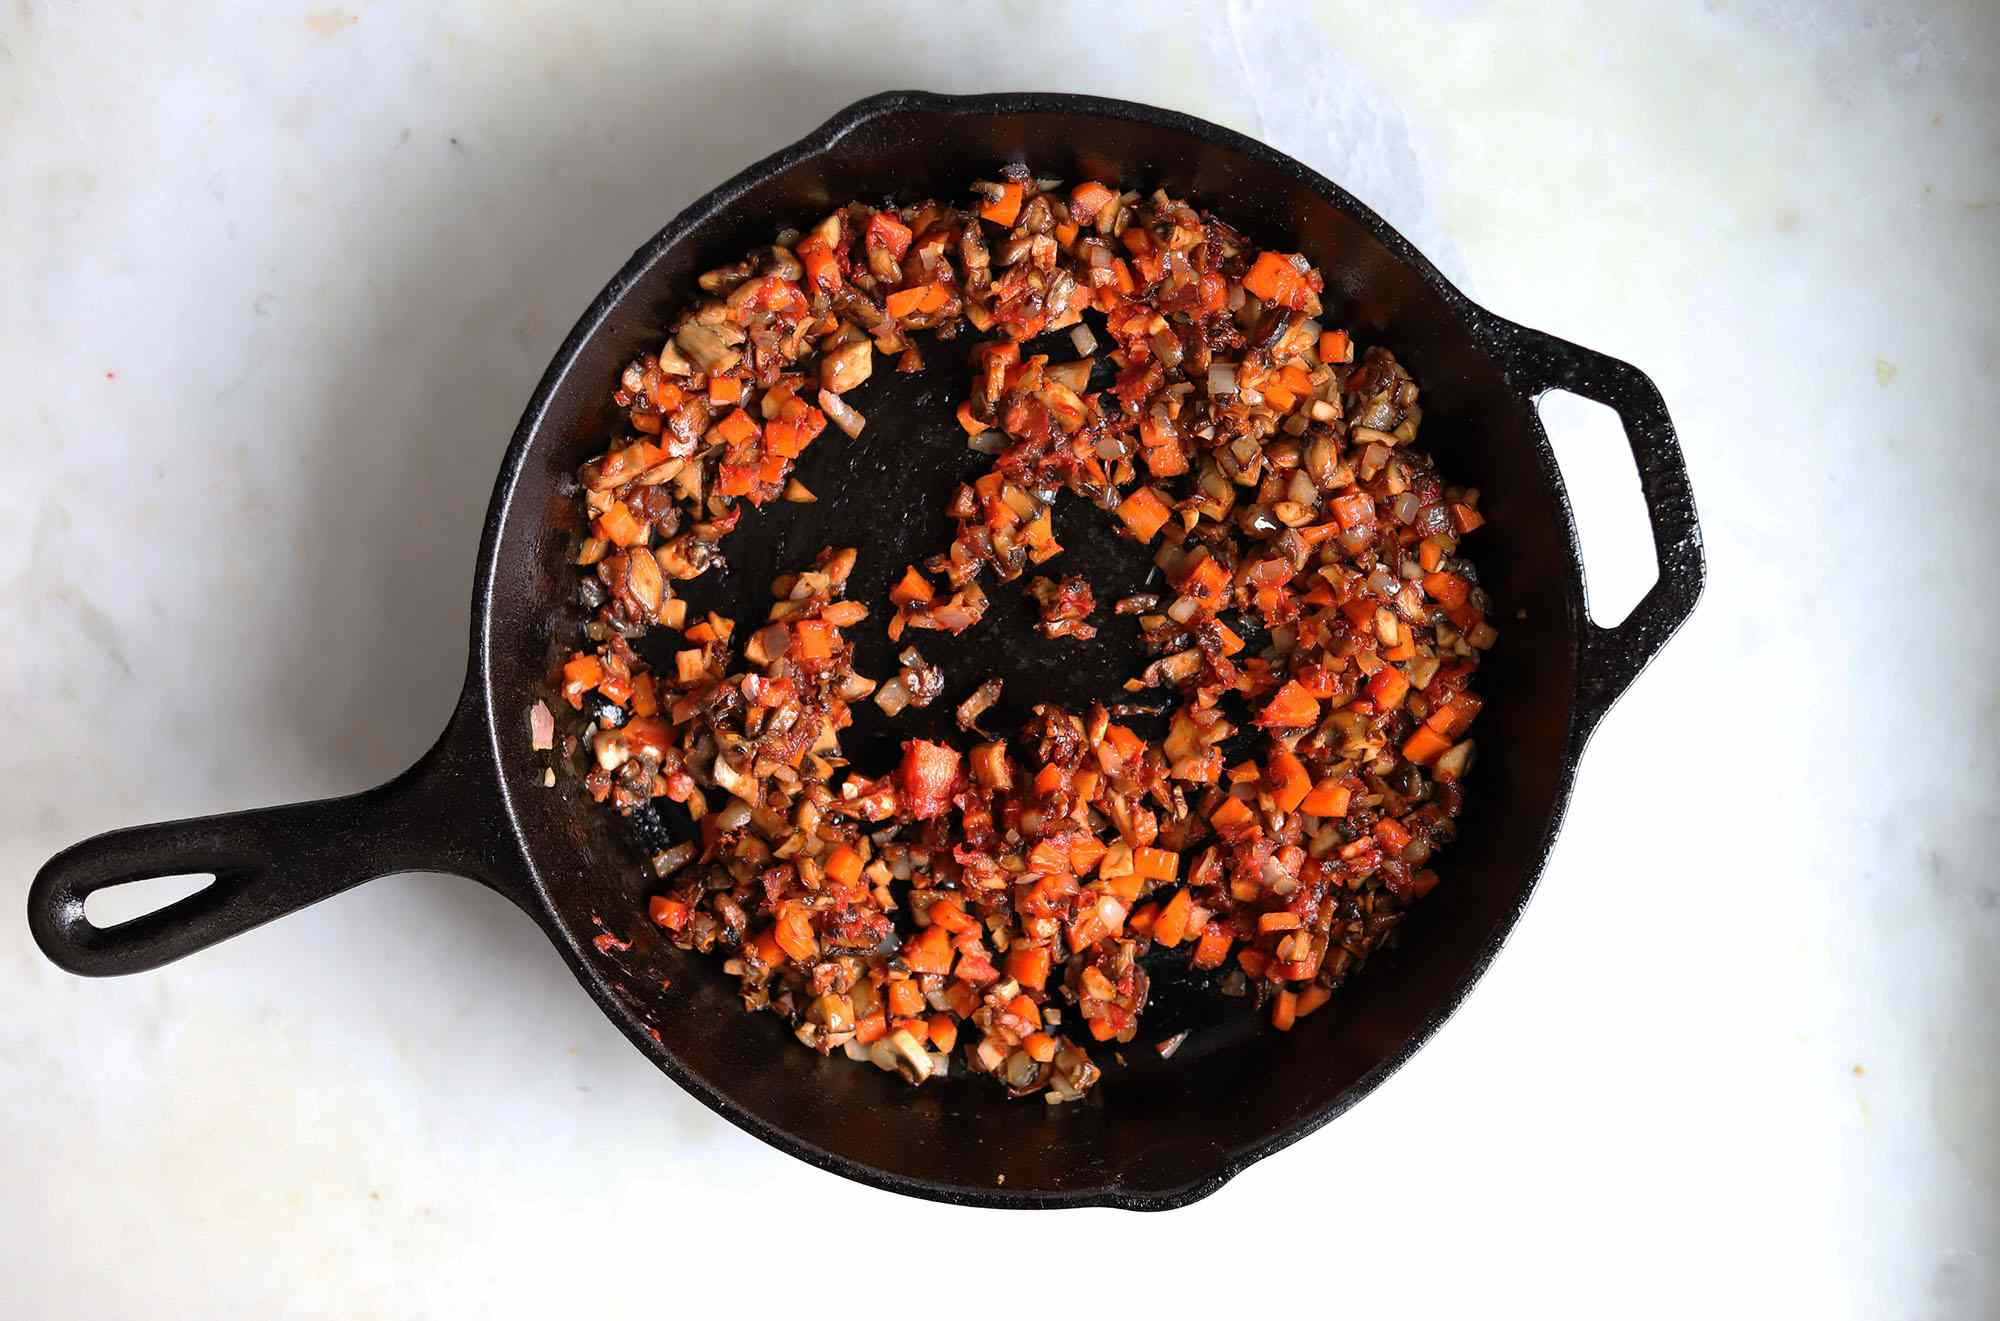 tomato paste with mushroom and carrots